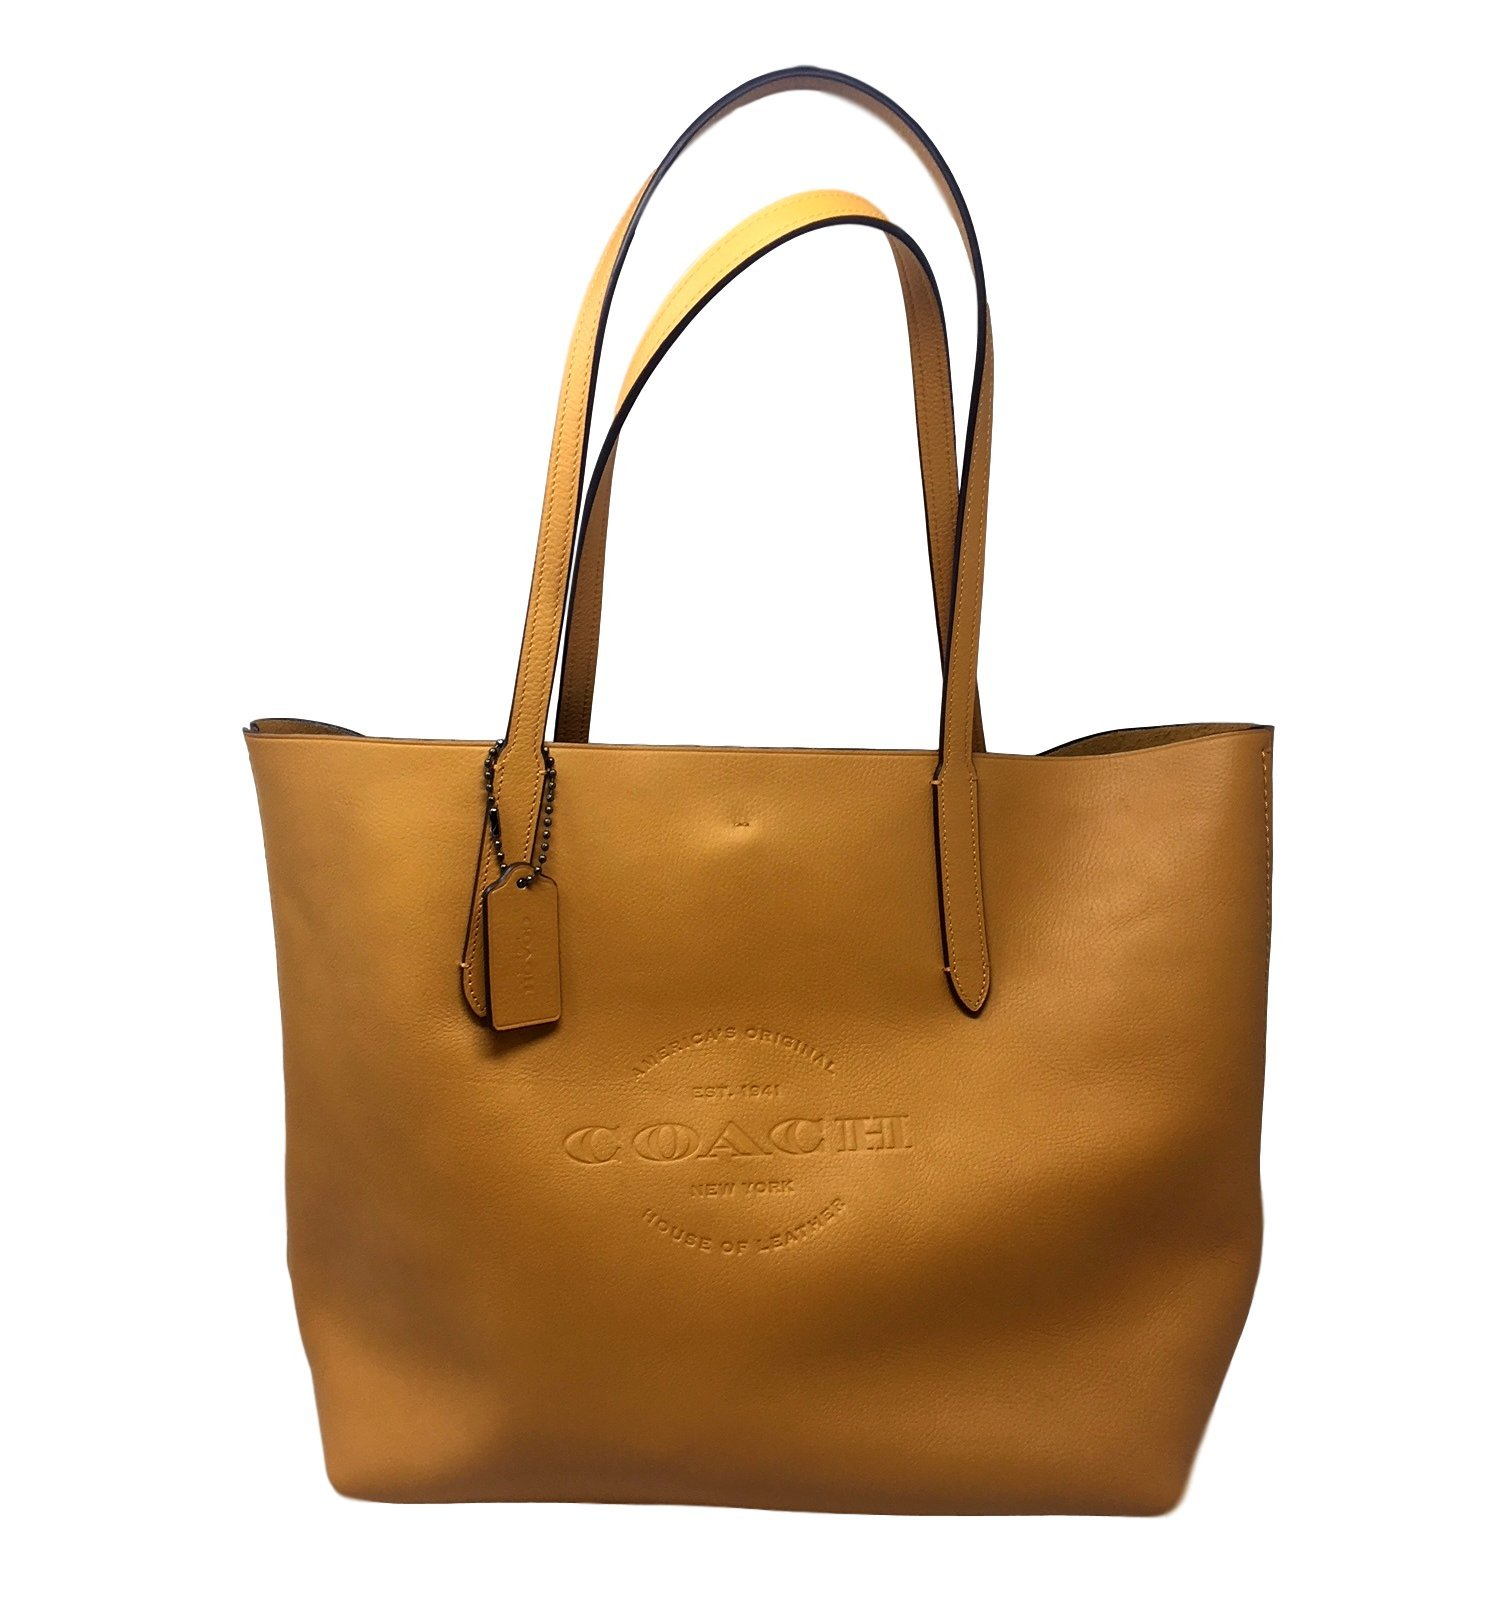 COACH Hudson Tote in Natural Smooth Leather in Mustard / Black Antique Nickel 59403